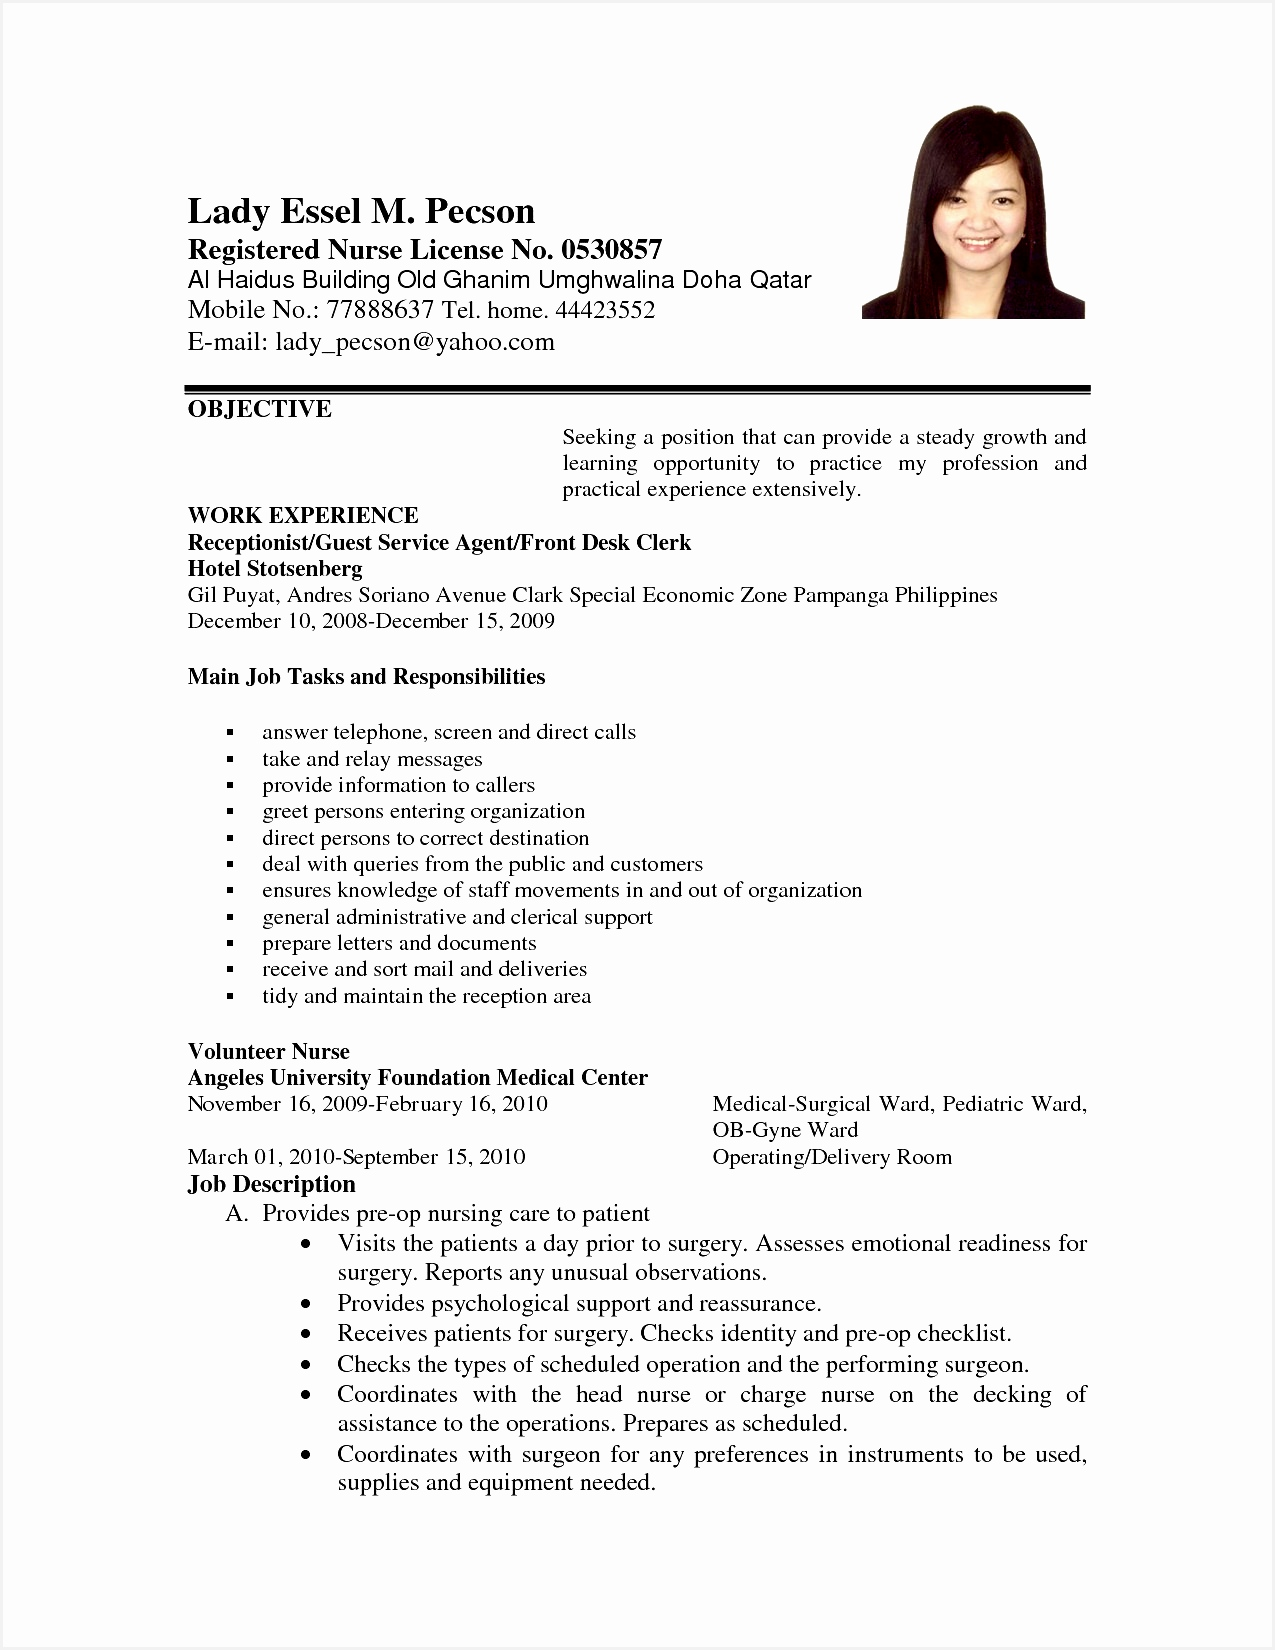 Sample Simple Resume format Lovely I Pinimg originals A5 A8 0d A5a80d21b21e036dc016501275